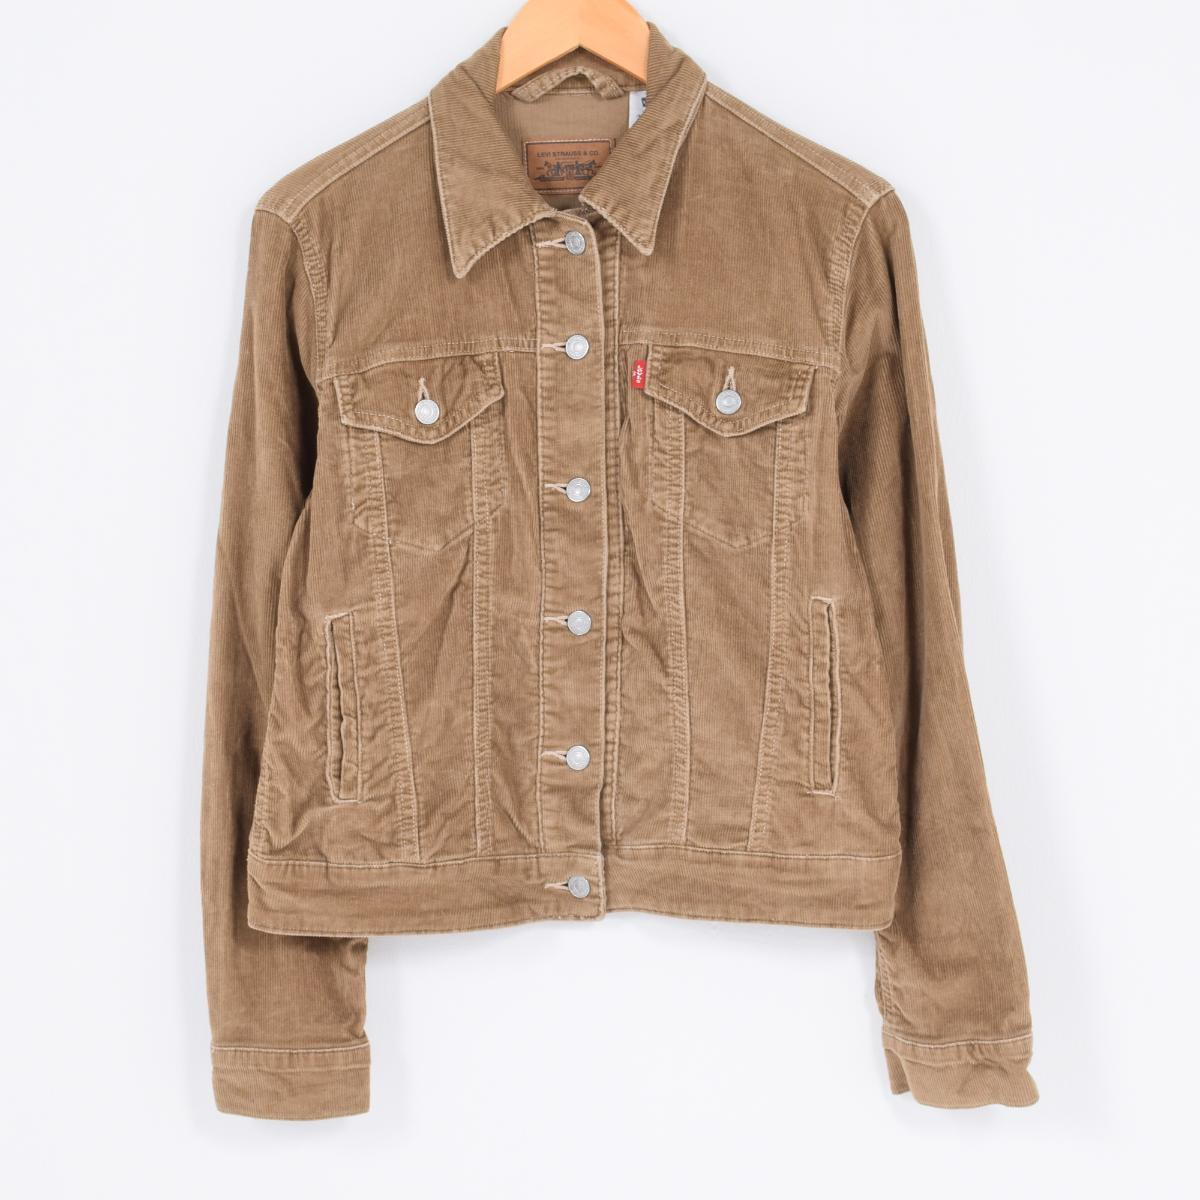 Compare Men Corduroy Jackets products in Clothes at free-cabinetfile-downloaded.ga, including DRI DUCK T Outlaw Boulder Cloth™ Jacket with Corduroy Collar Tall Sizes, Ralph Lauren Mens Corduroy Quilted Jacket, American Rag Men's Varsity Corduroy Bomber Jacket, Created for Macy's.